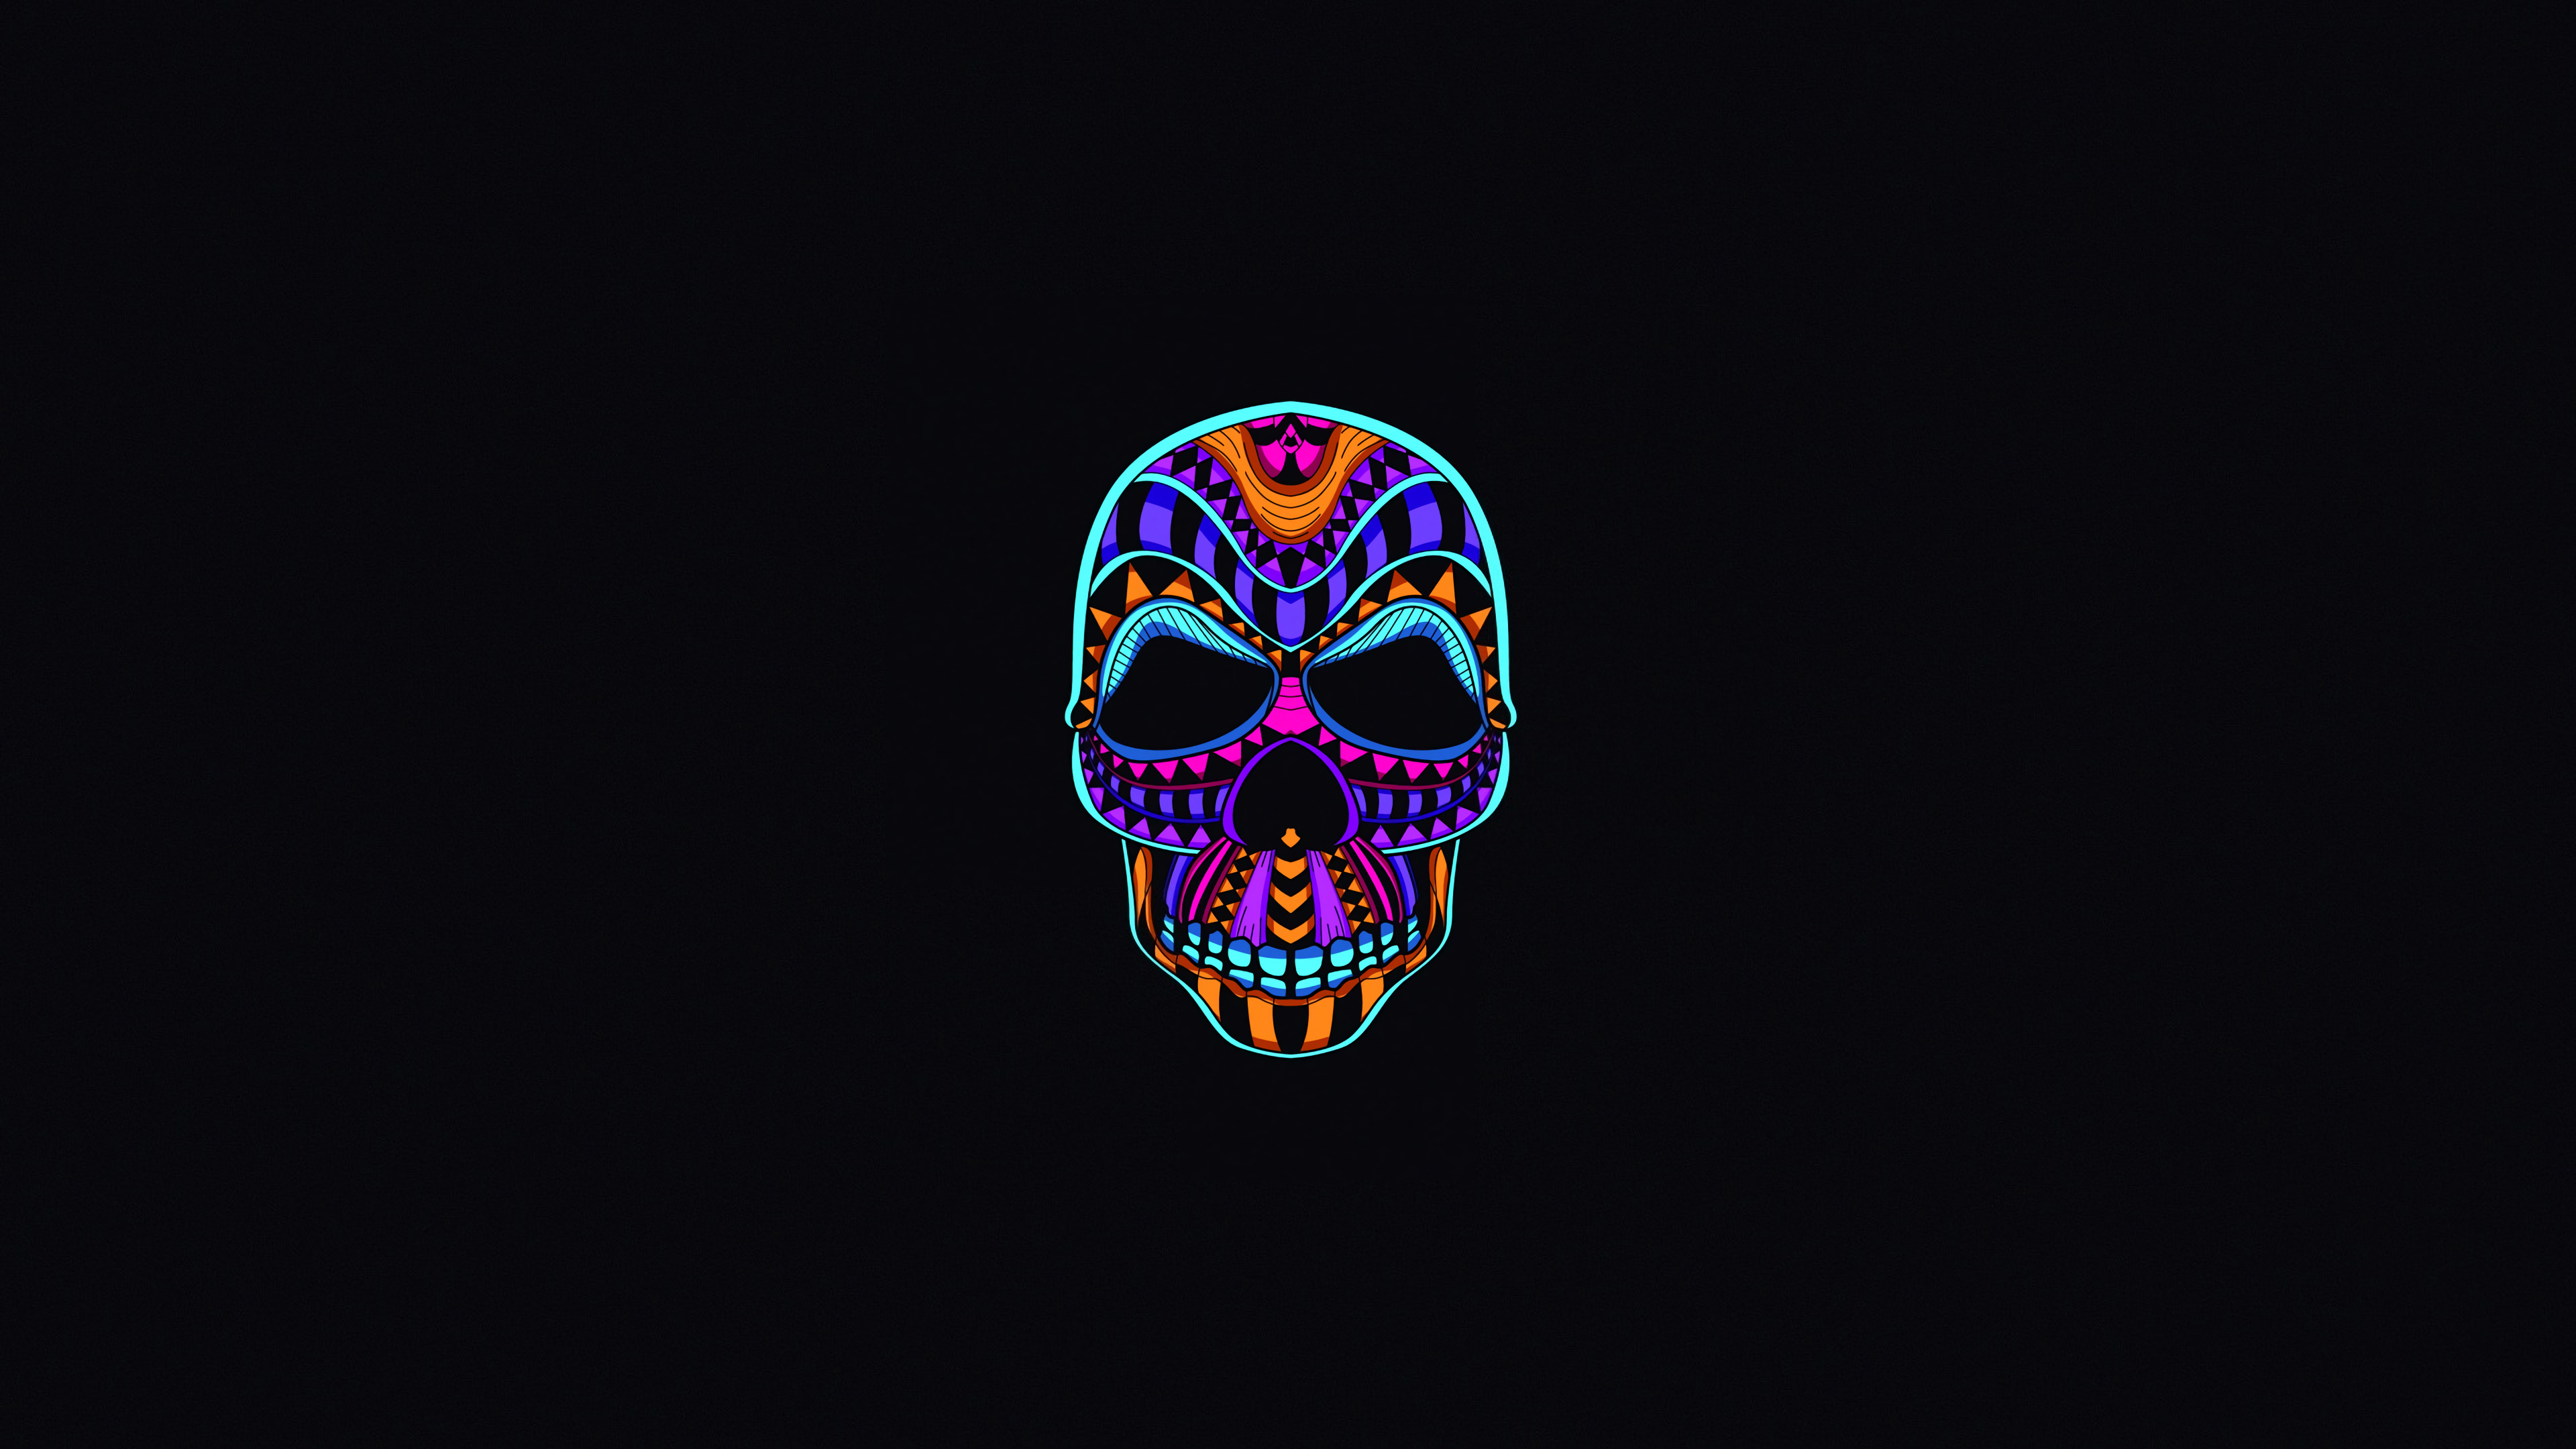 Neon Wallpaper Hd Posted By Ethan Mercado